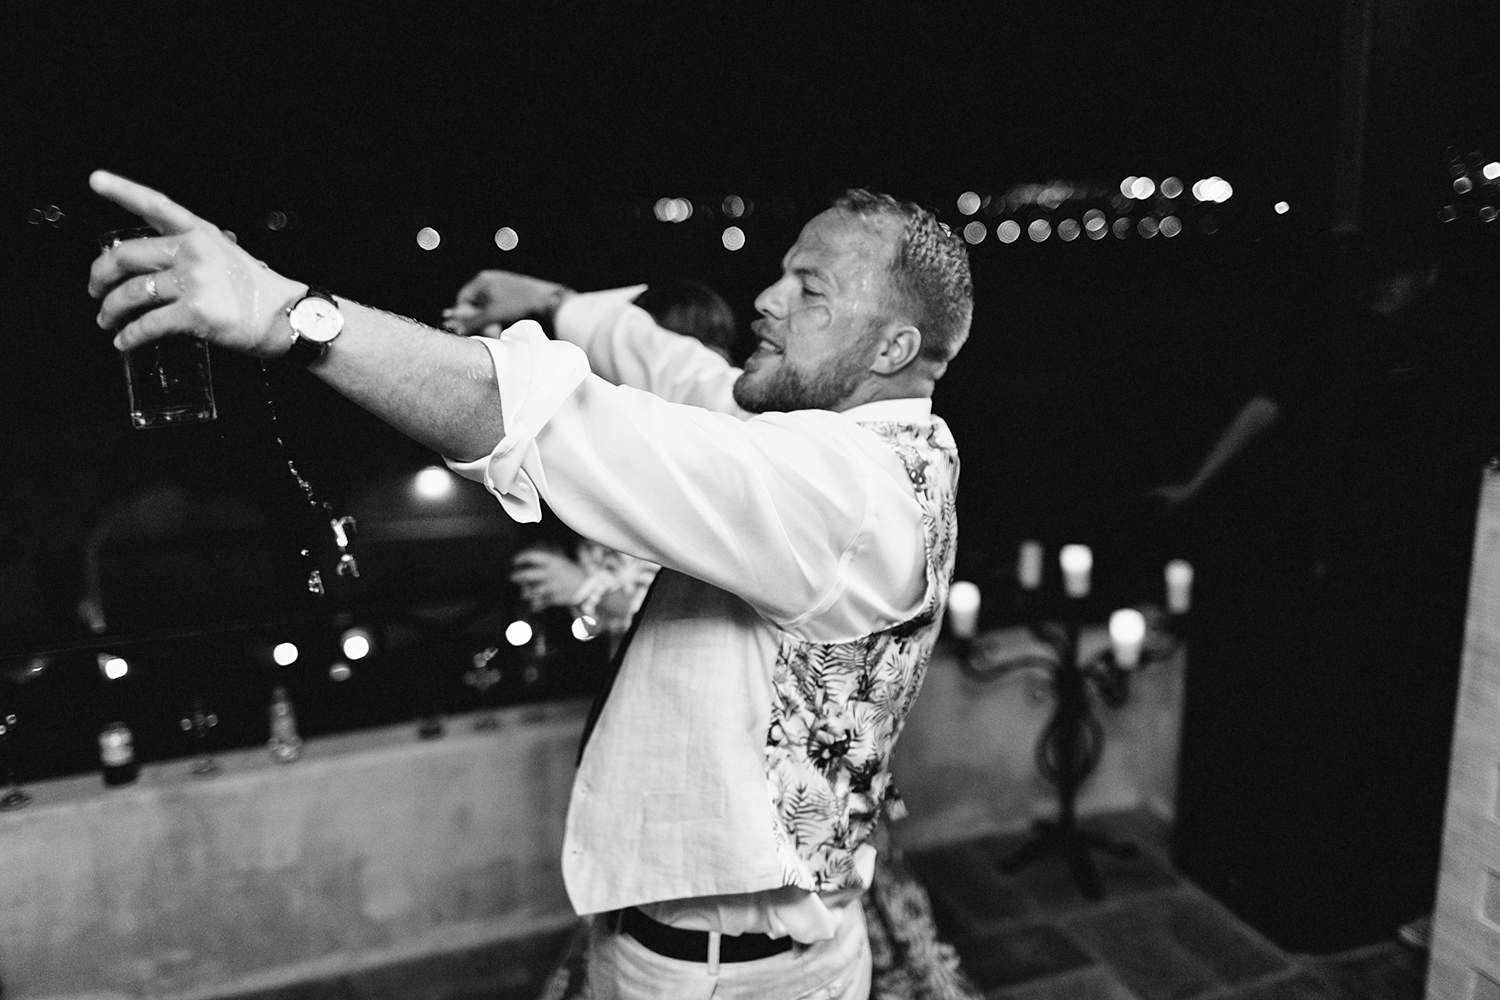 cabo-san-lucas-junebug-weddings-green-wedding-shoes-toronto-wedding-photographer-3b-photography-ventanas-private-club-mexico-reception-night-real-moments-party-dancing-good-times-groom-partying.jpg